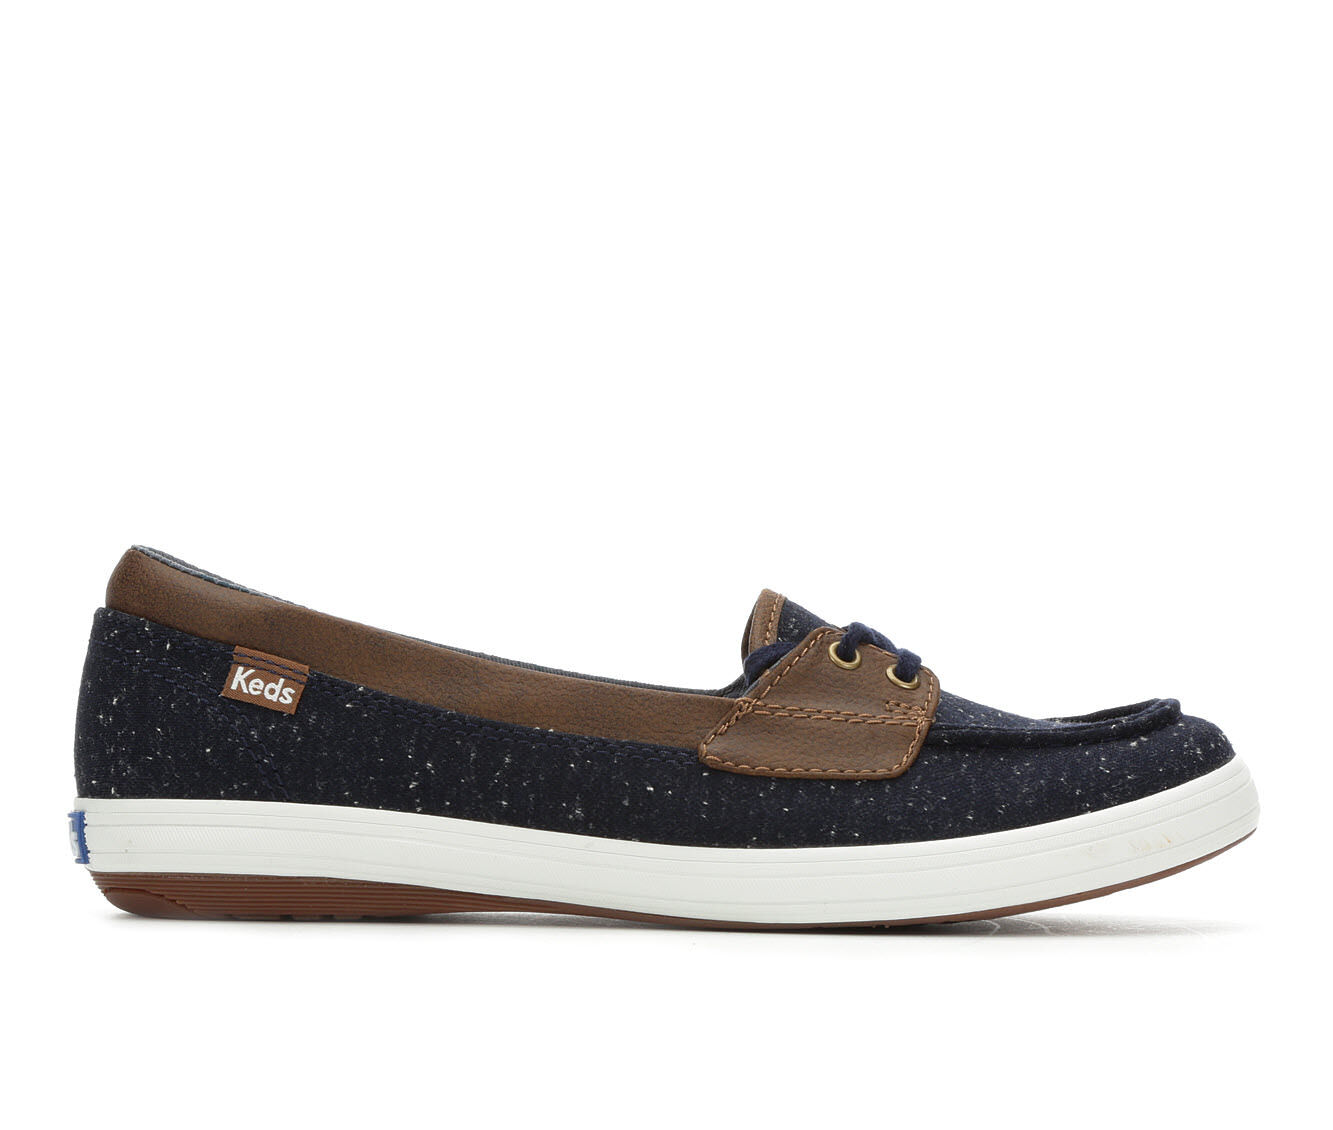 d45a09de9464b Womens keds glimmer speckled knit boat shoes shoe carnival jpg 1694x1436 Shoes  keds coupons